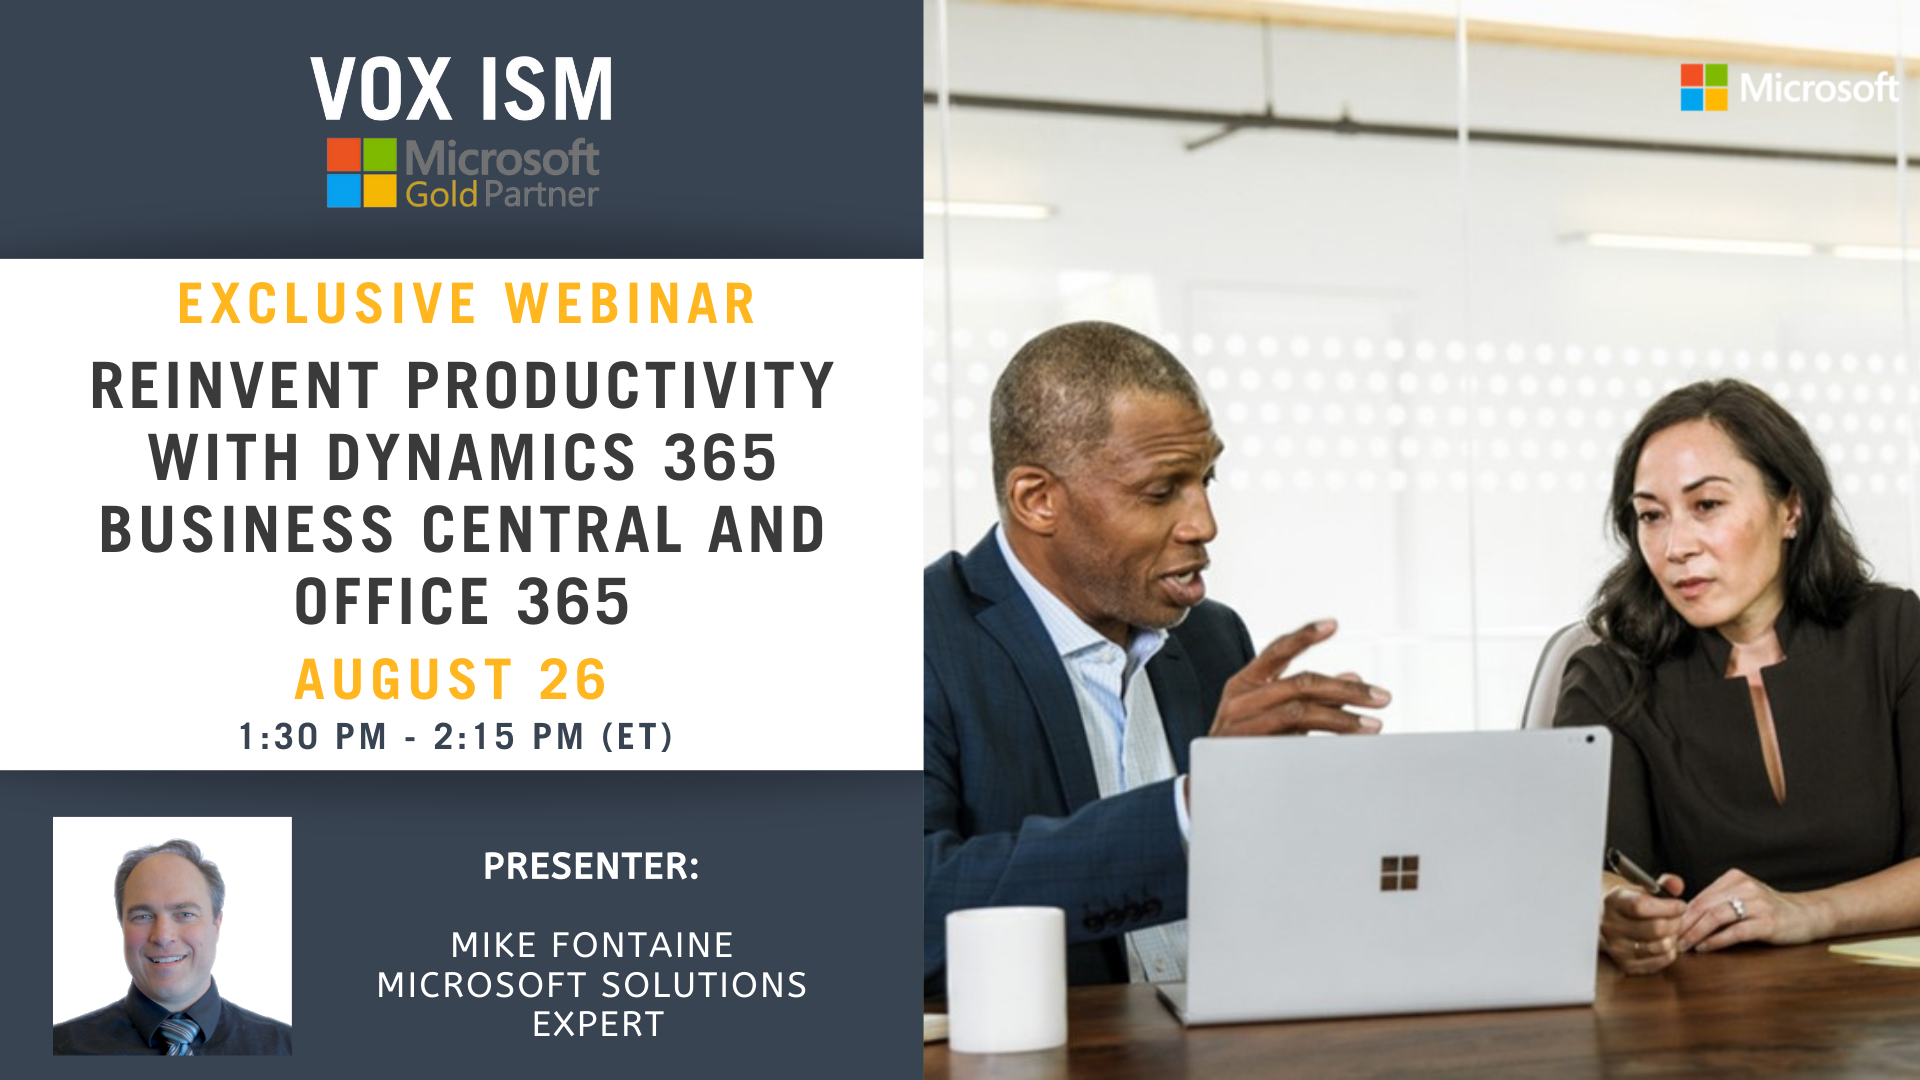 Reinvent Productivity with Dynamics 365 Business Central and Office 365 - August 26 - Webinar